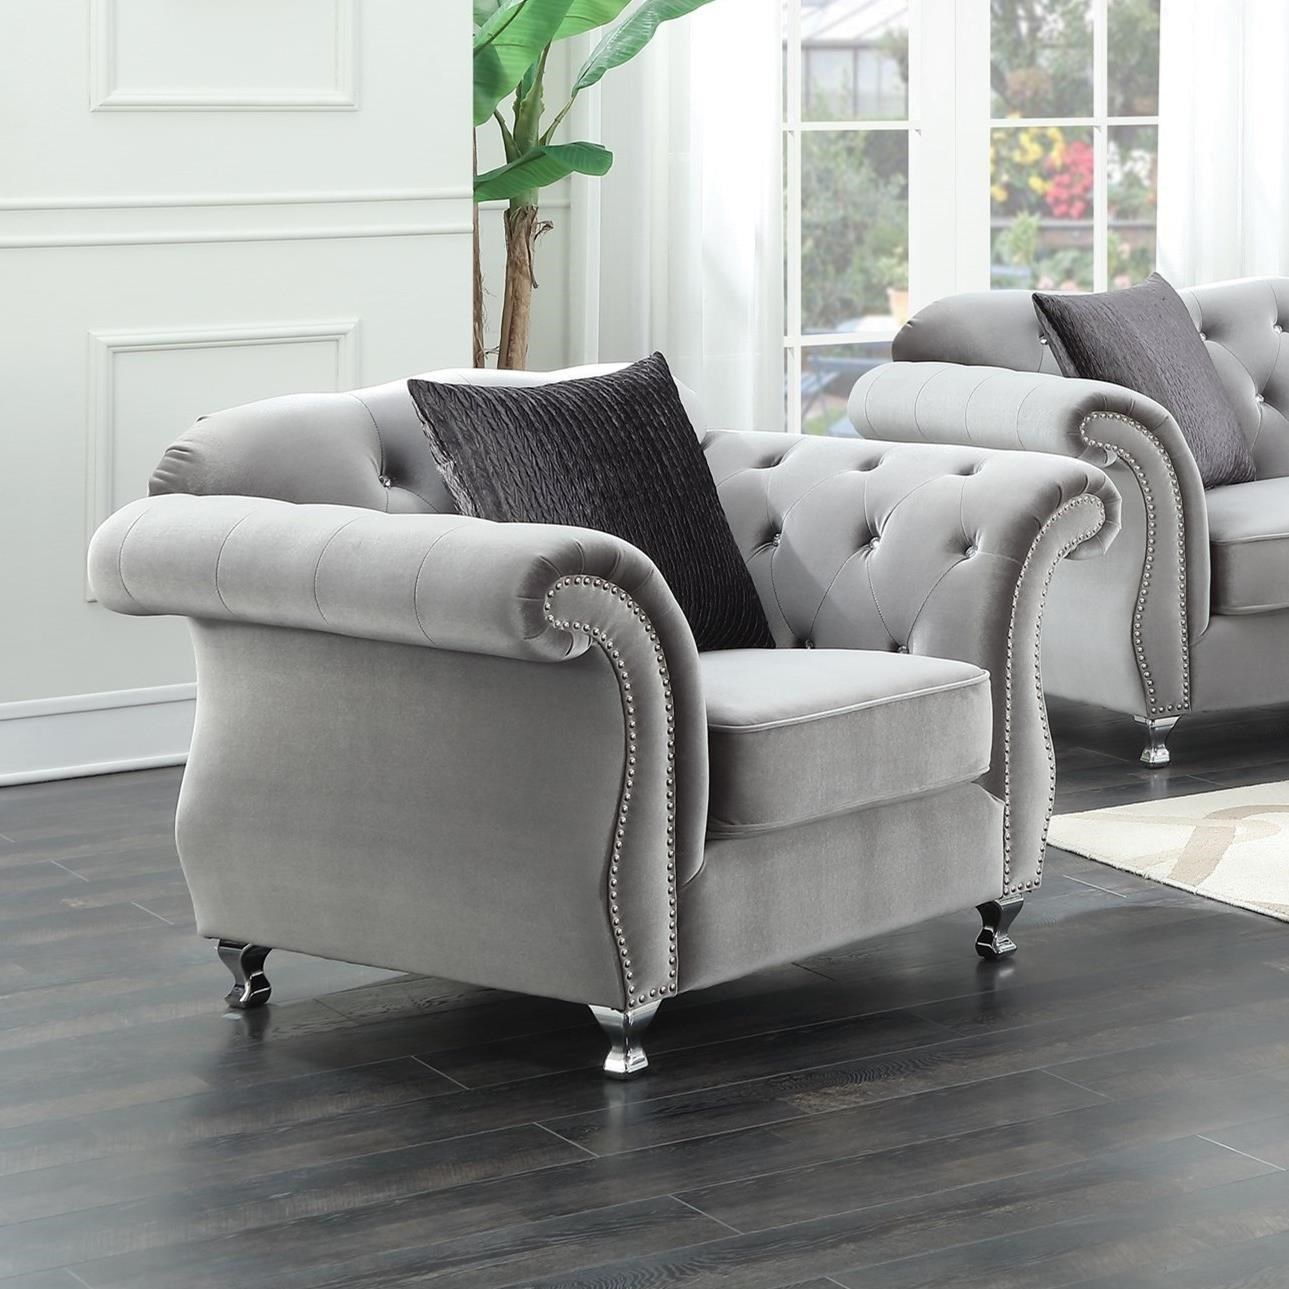 Frostine Chair by Coaster at Value City Furniture